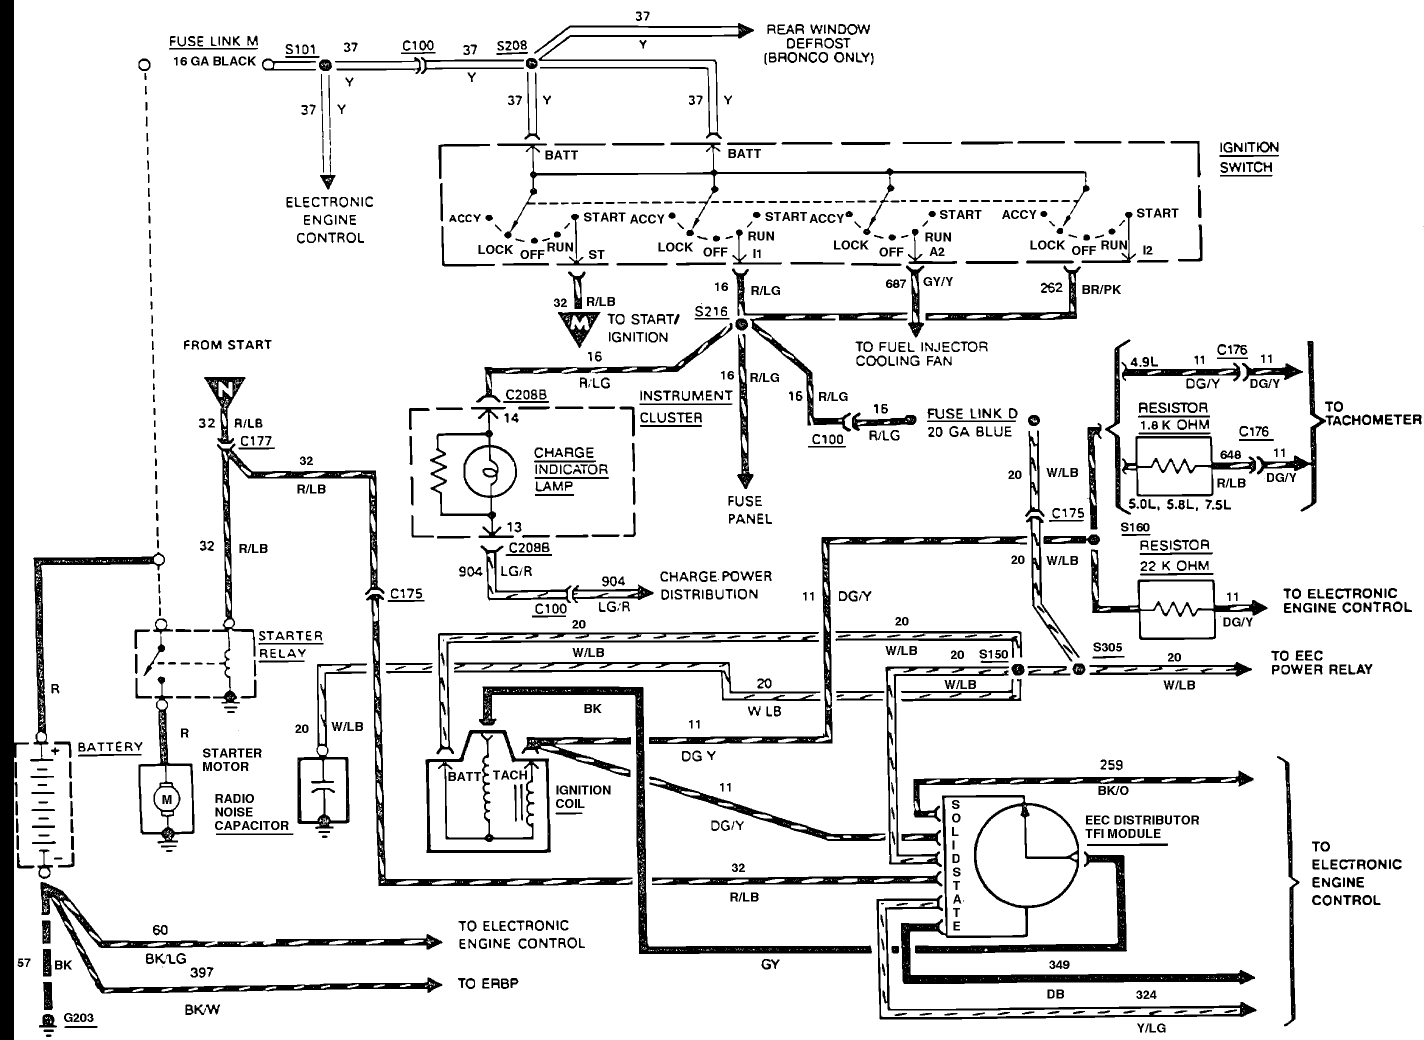 1989 ford f150 ignition wiring diagram Download-1988 ford F150 Ignition Wiring Diagram ford F250 Wiring Diagram Unique Awesome ford 460 Ignition 13-t